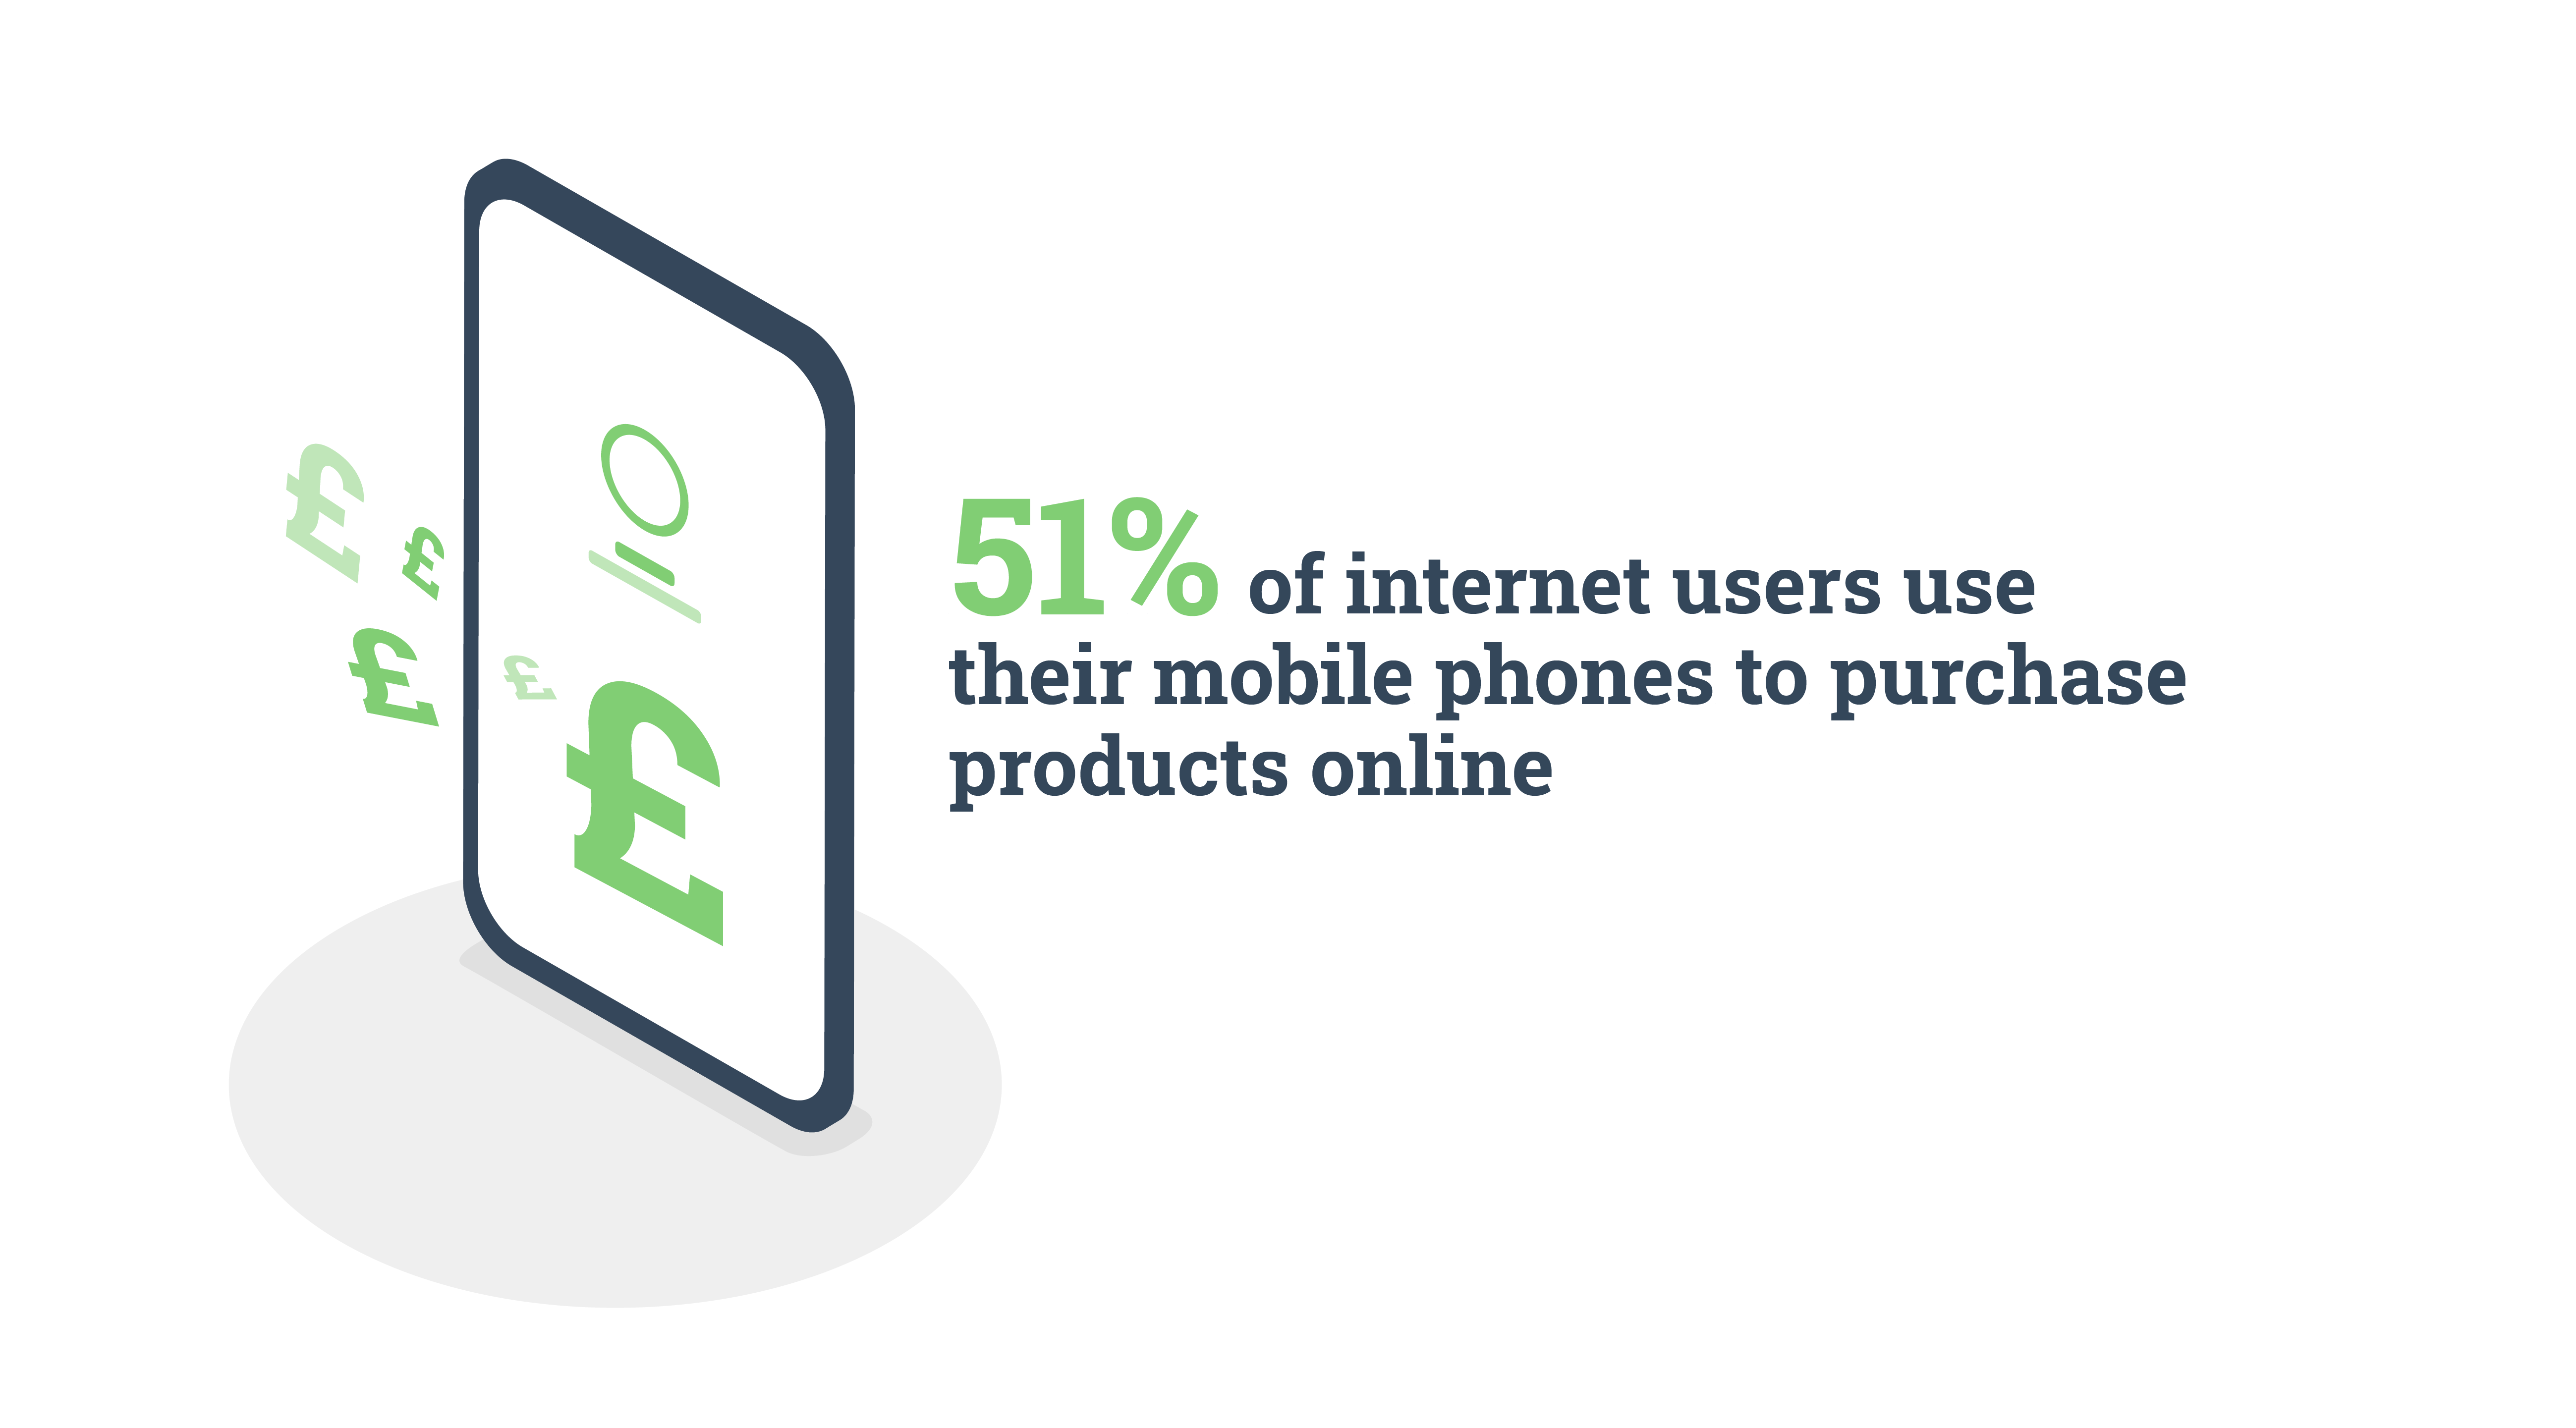 Mobile phone usage for purchasing stat